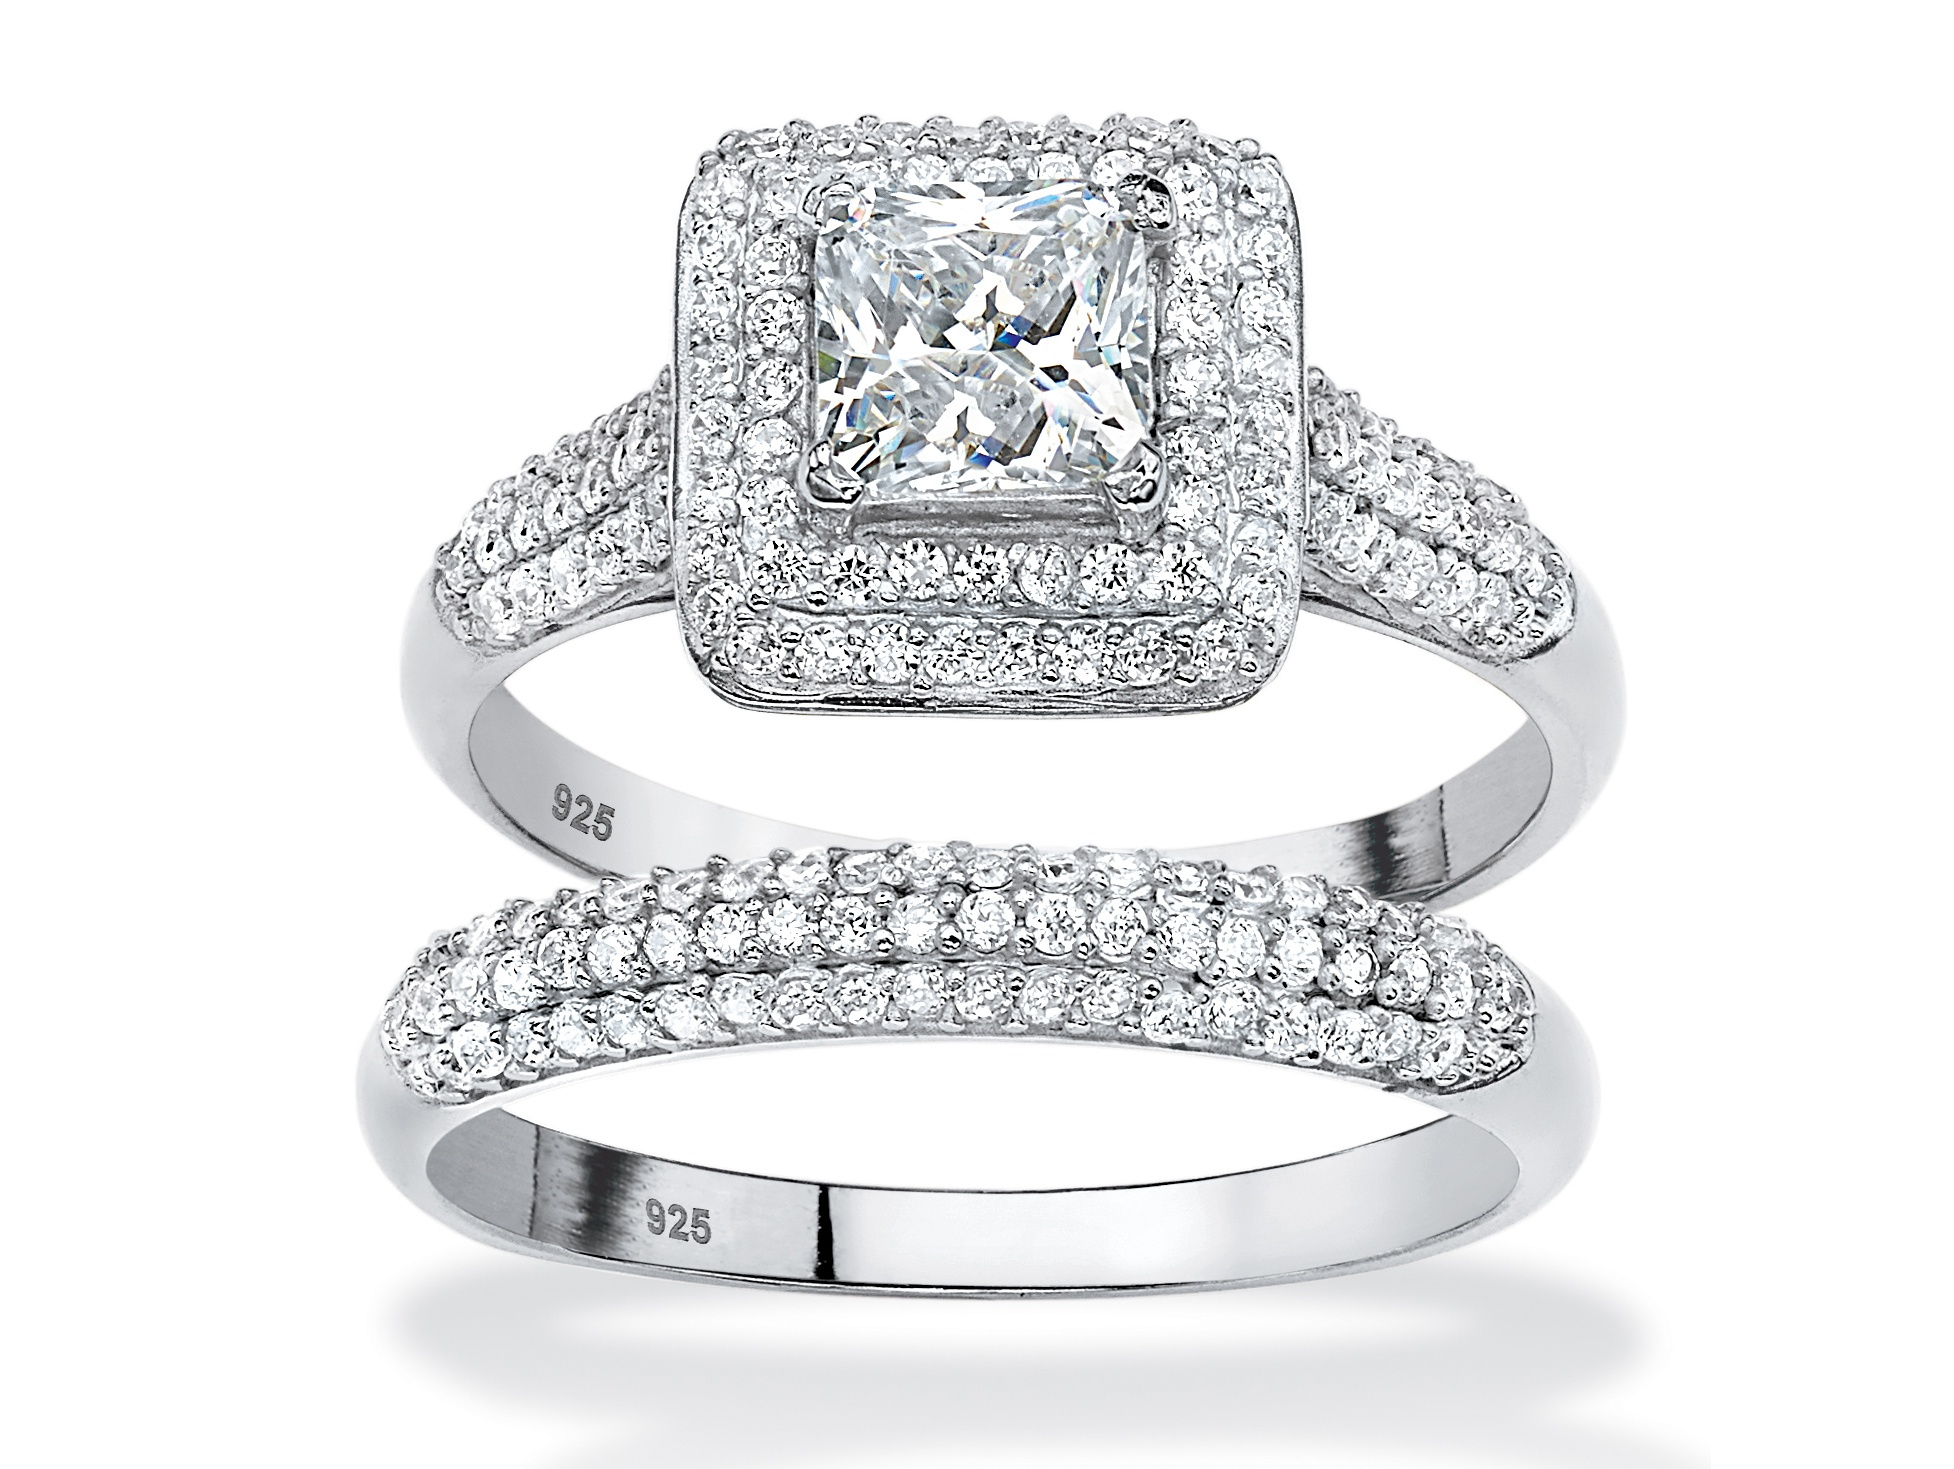 2 Piece 1.47 TCW Princess-Cut Cubic Zirconia Halo Bridal Ring Set in Platinum over Sterling Silver by PalmBeach Jewelry